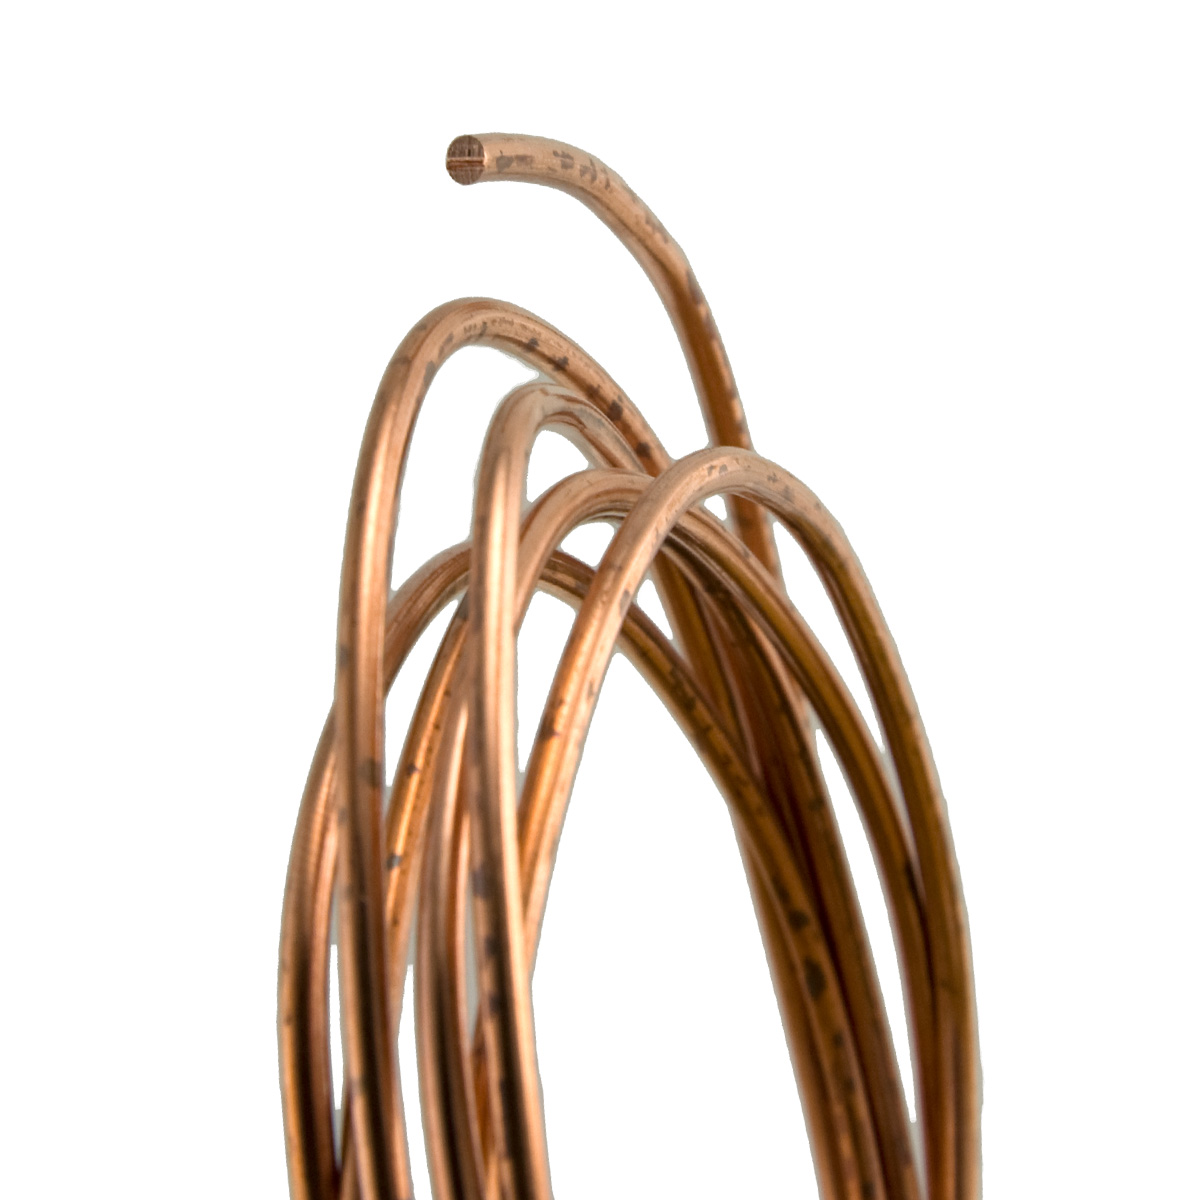 20 Gauge Round Half Hard Copper Wire: Wire Jewelry | Wire Wrap ...